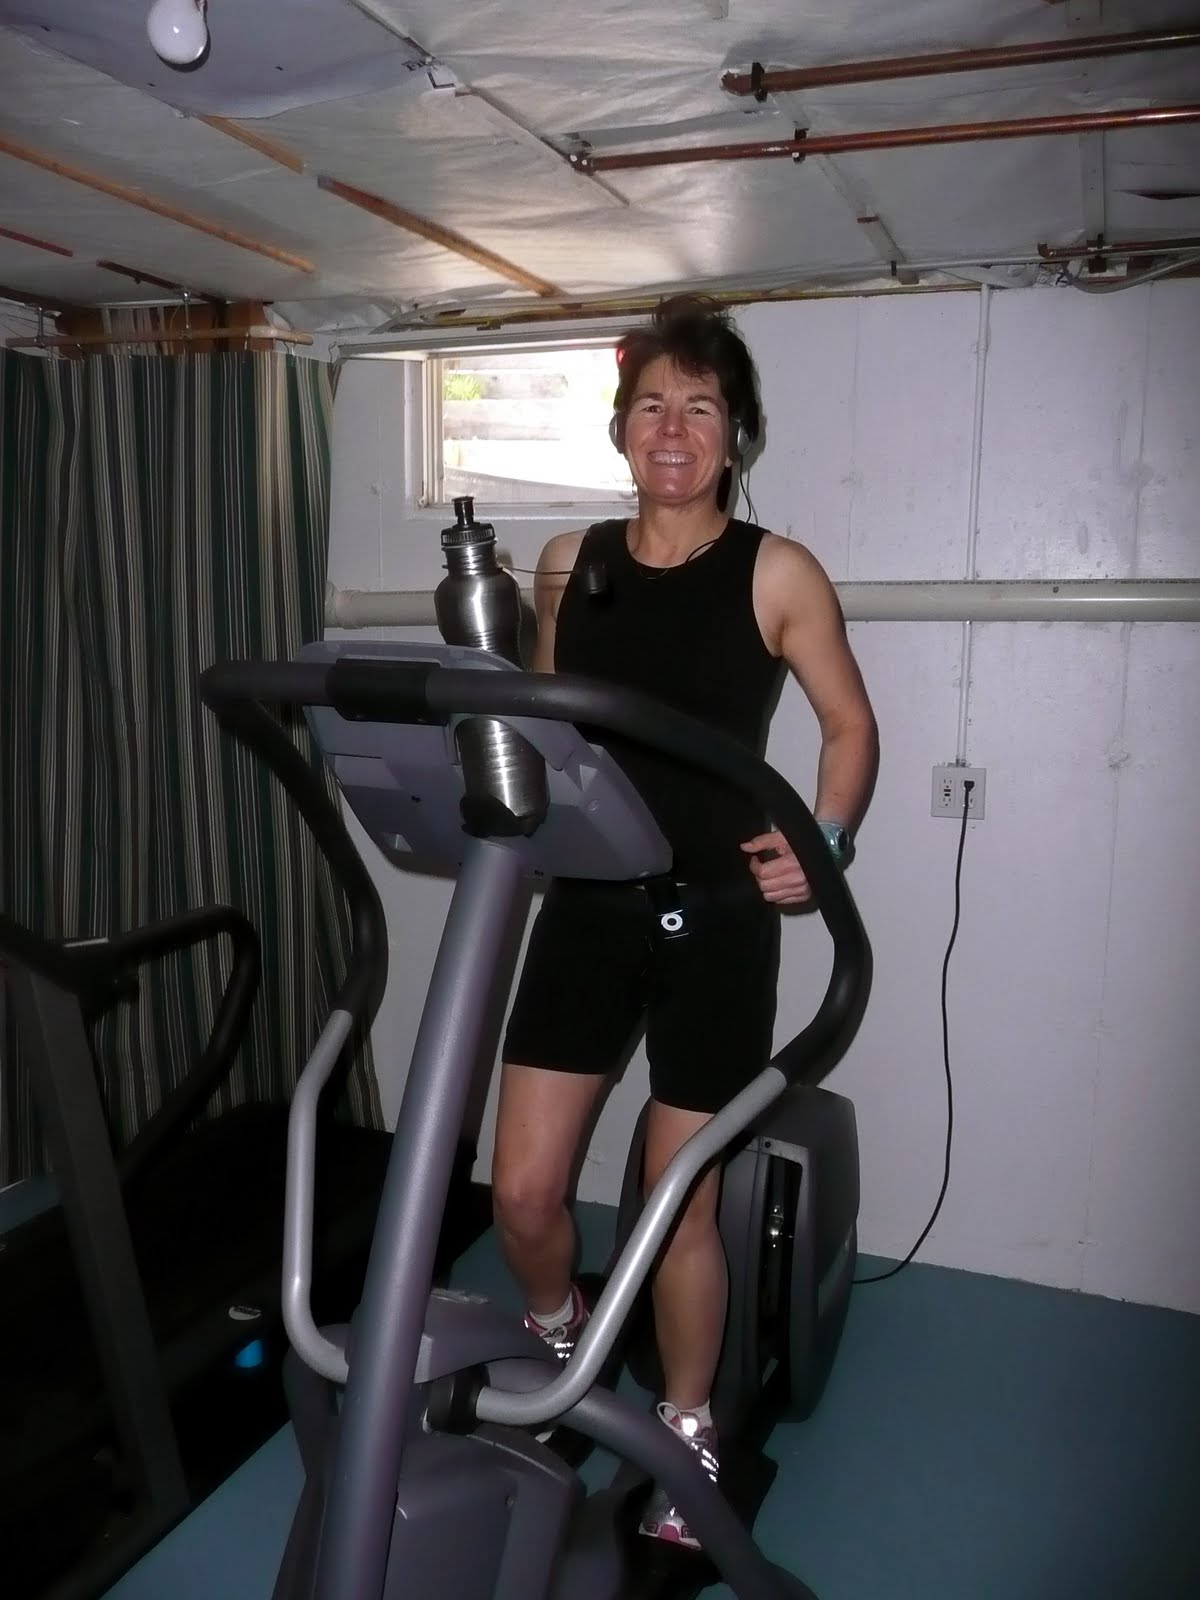 Cranky fitness happiness is a home gym